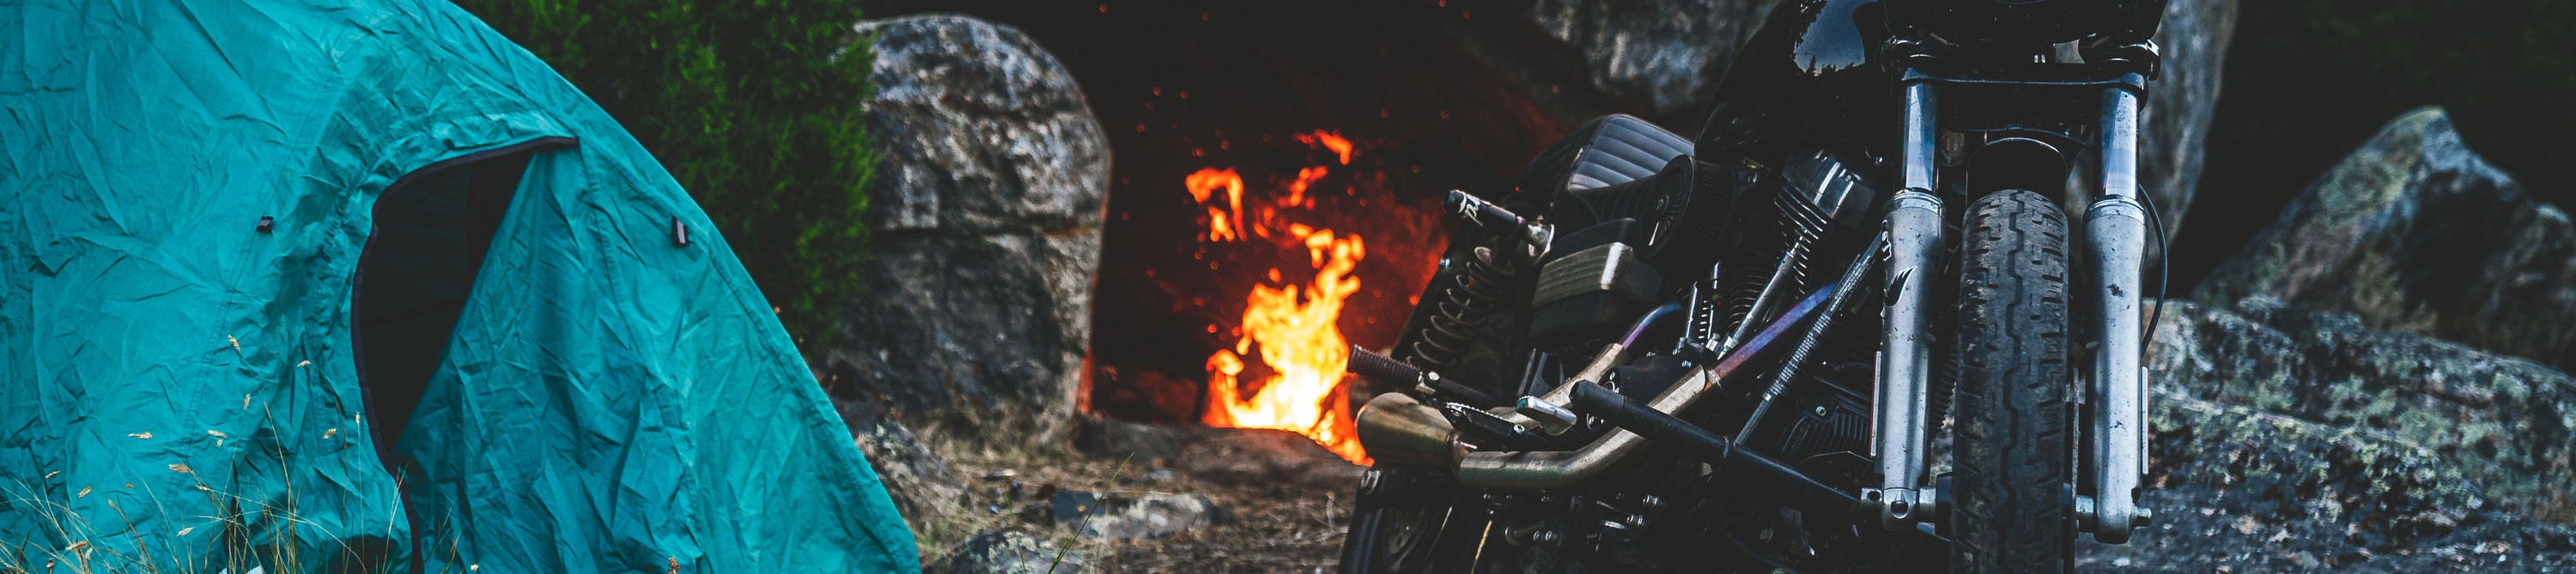 Scents of camping, campfire, and motorcycles could inspire your most adventurous life